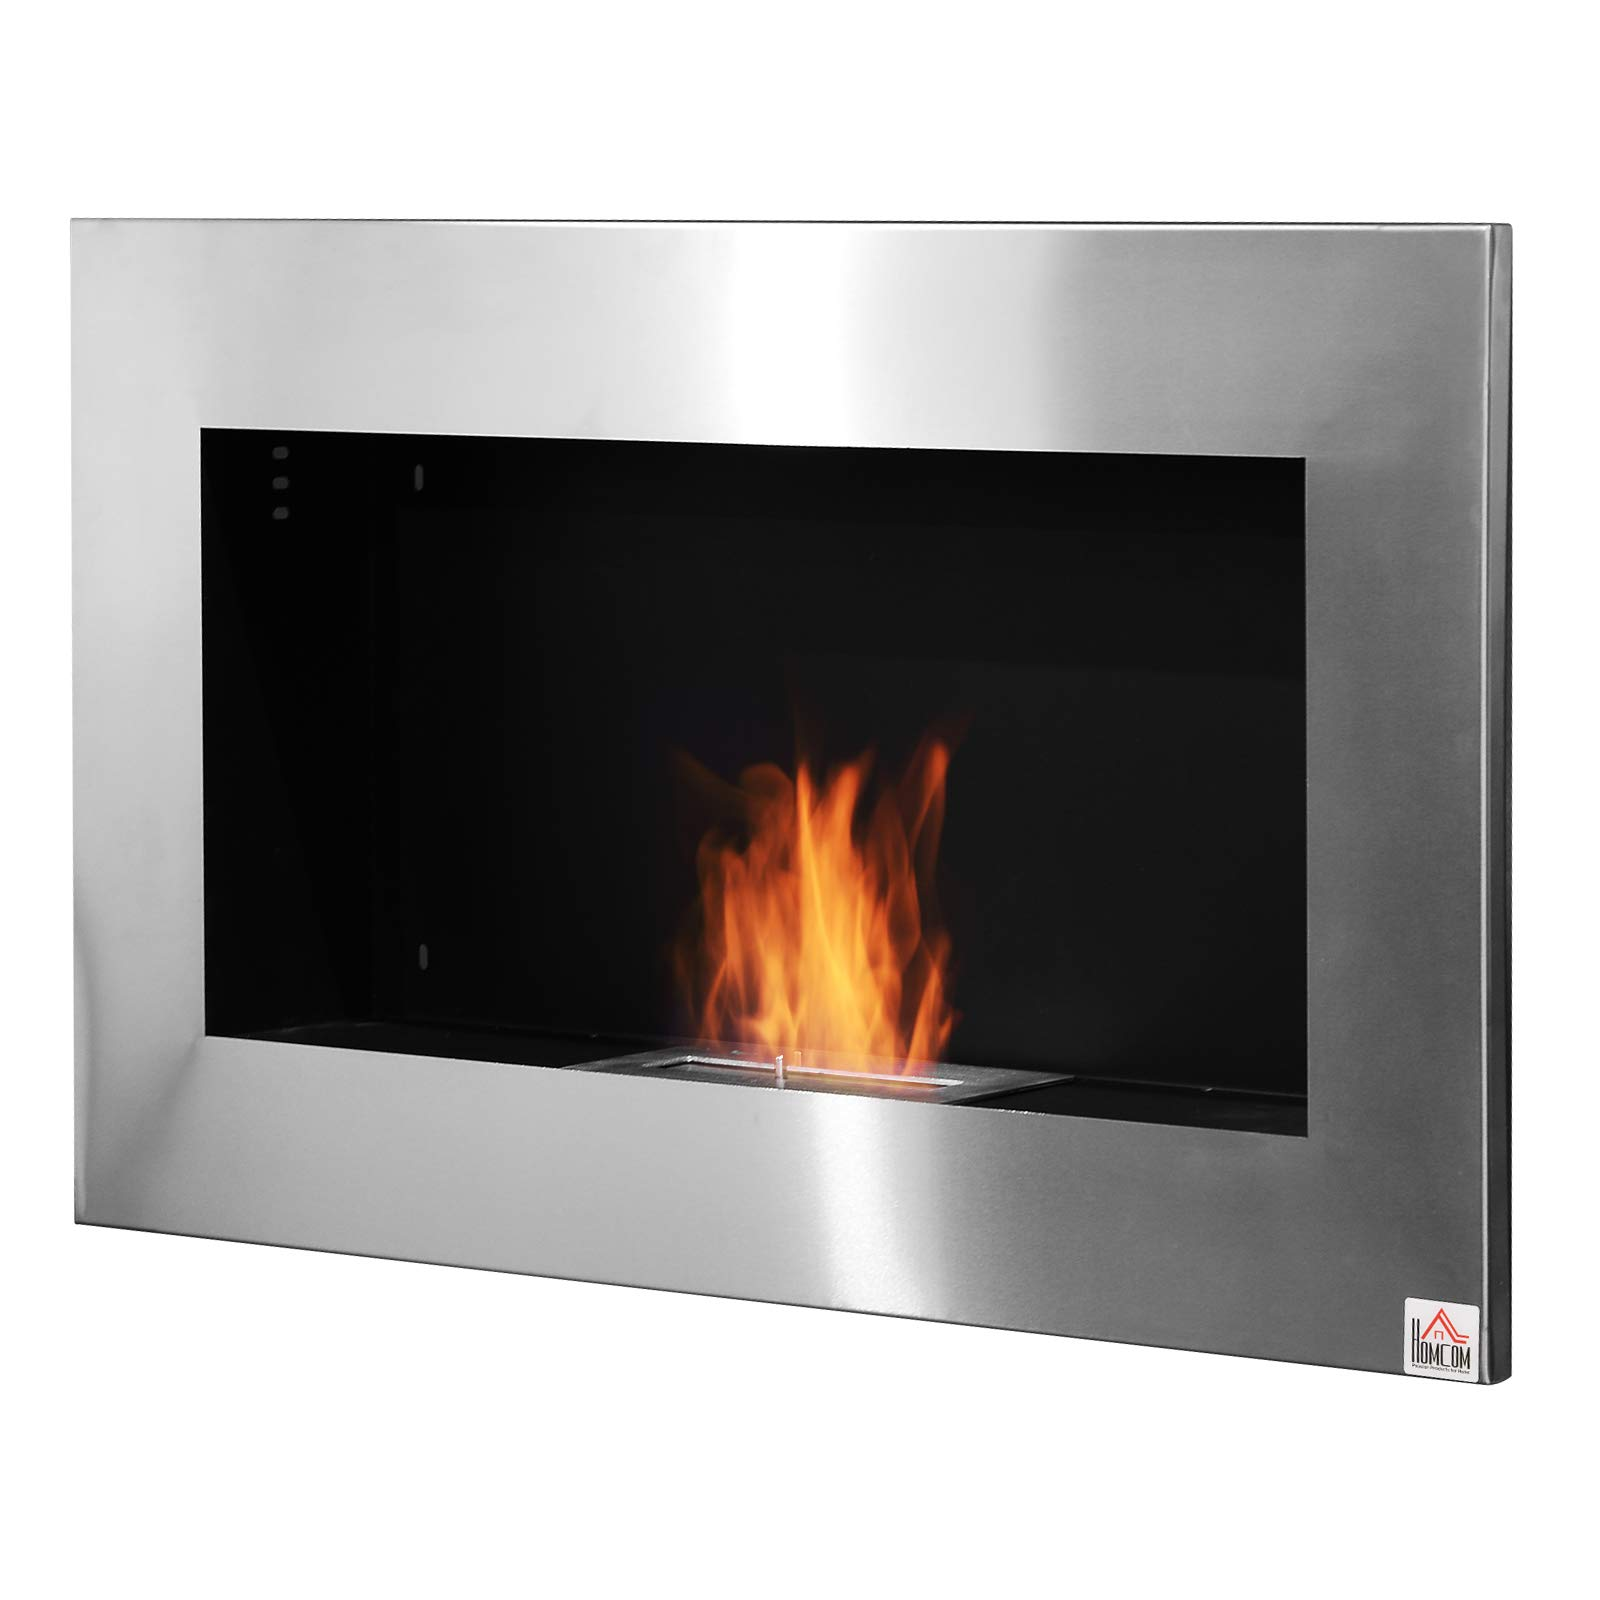 HOMCOM 35.5'' Contemporary Wall Mounted Ventless Indoor Bio Ethanol Fireplace - Stainless Steel by HOMCOM